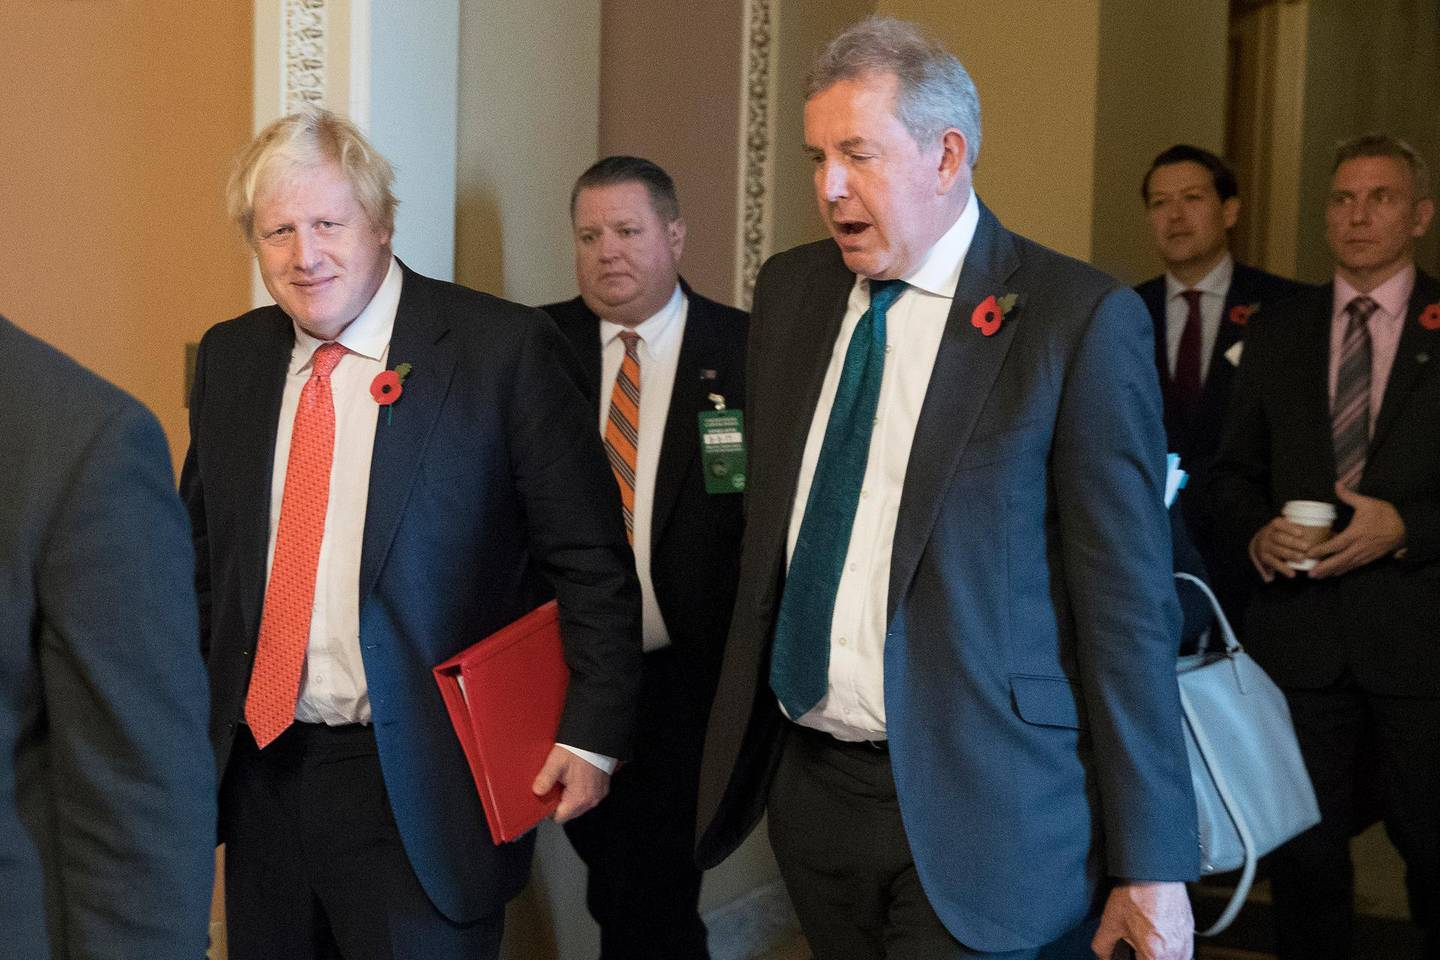 epa07707162 (FILE) - Then British Foreign Secretary Boris Johnson (L) walks with British Ambassador to the United States Sir Kim Darroch (R) following a meeting on Capitol Hill in Washington, DC, USA, 08 November 2017 (reissued 09 July 2019). According to media reports, Darroch has quit as British ambassador to the US after emails were leaked from Darroch, calling US President Trump's administration inept.  EPA/MICHAEL REYNOLDS